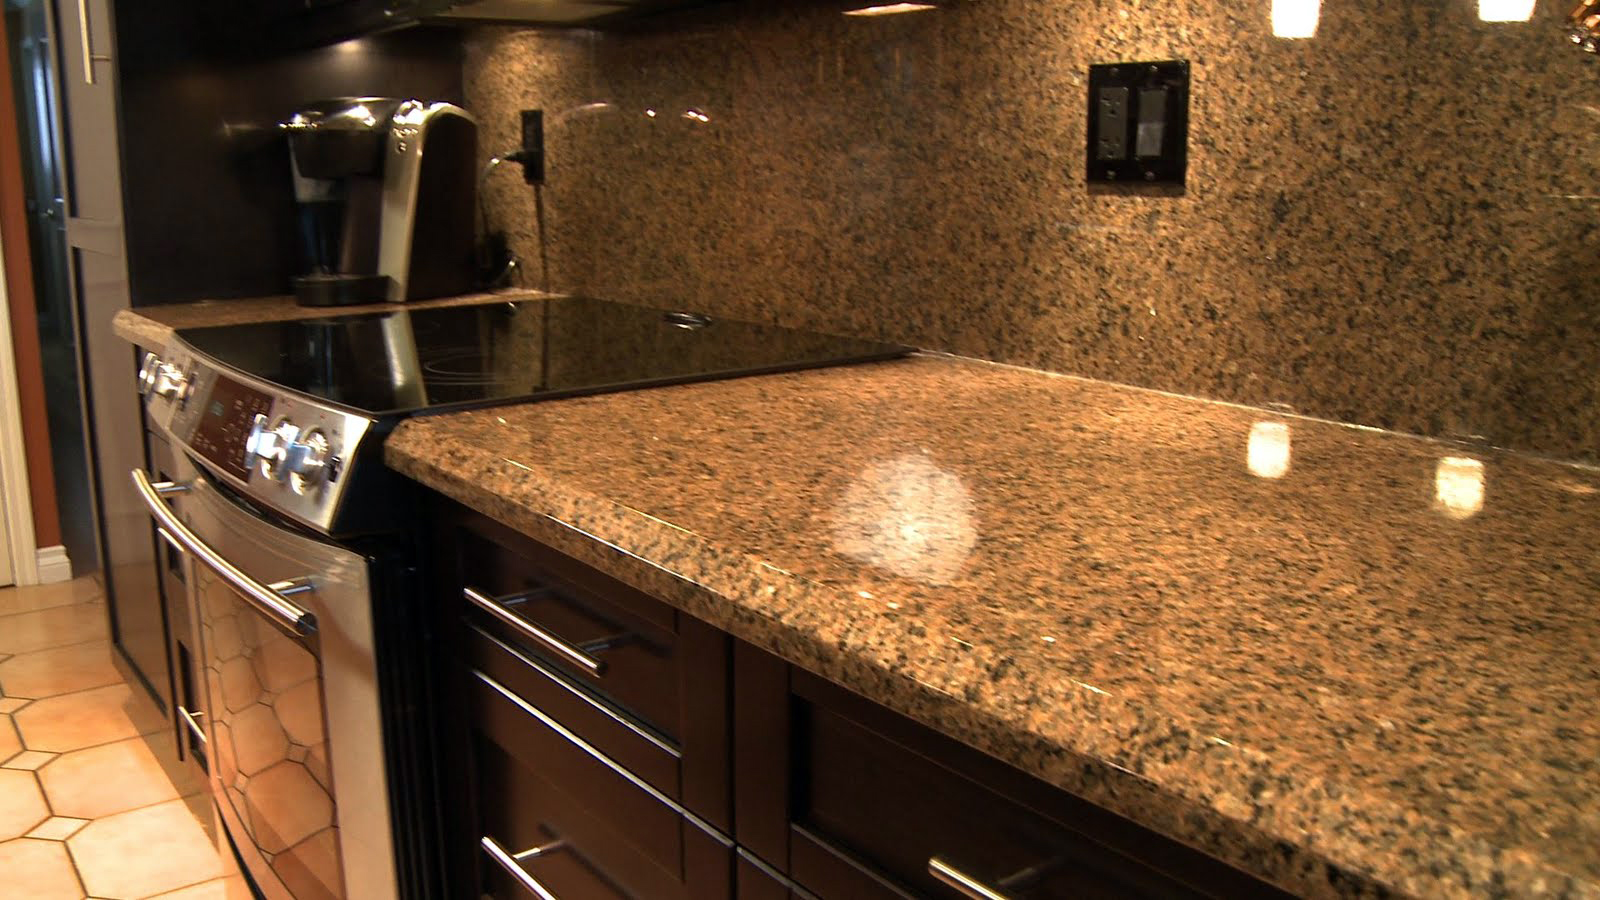 Golden-Leaf-Granite-Kitchen-Countertop-Island-Granix-5